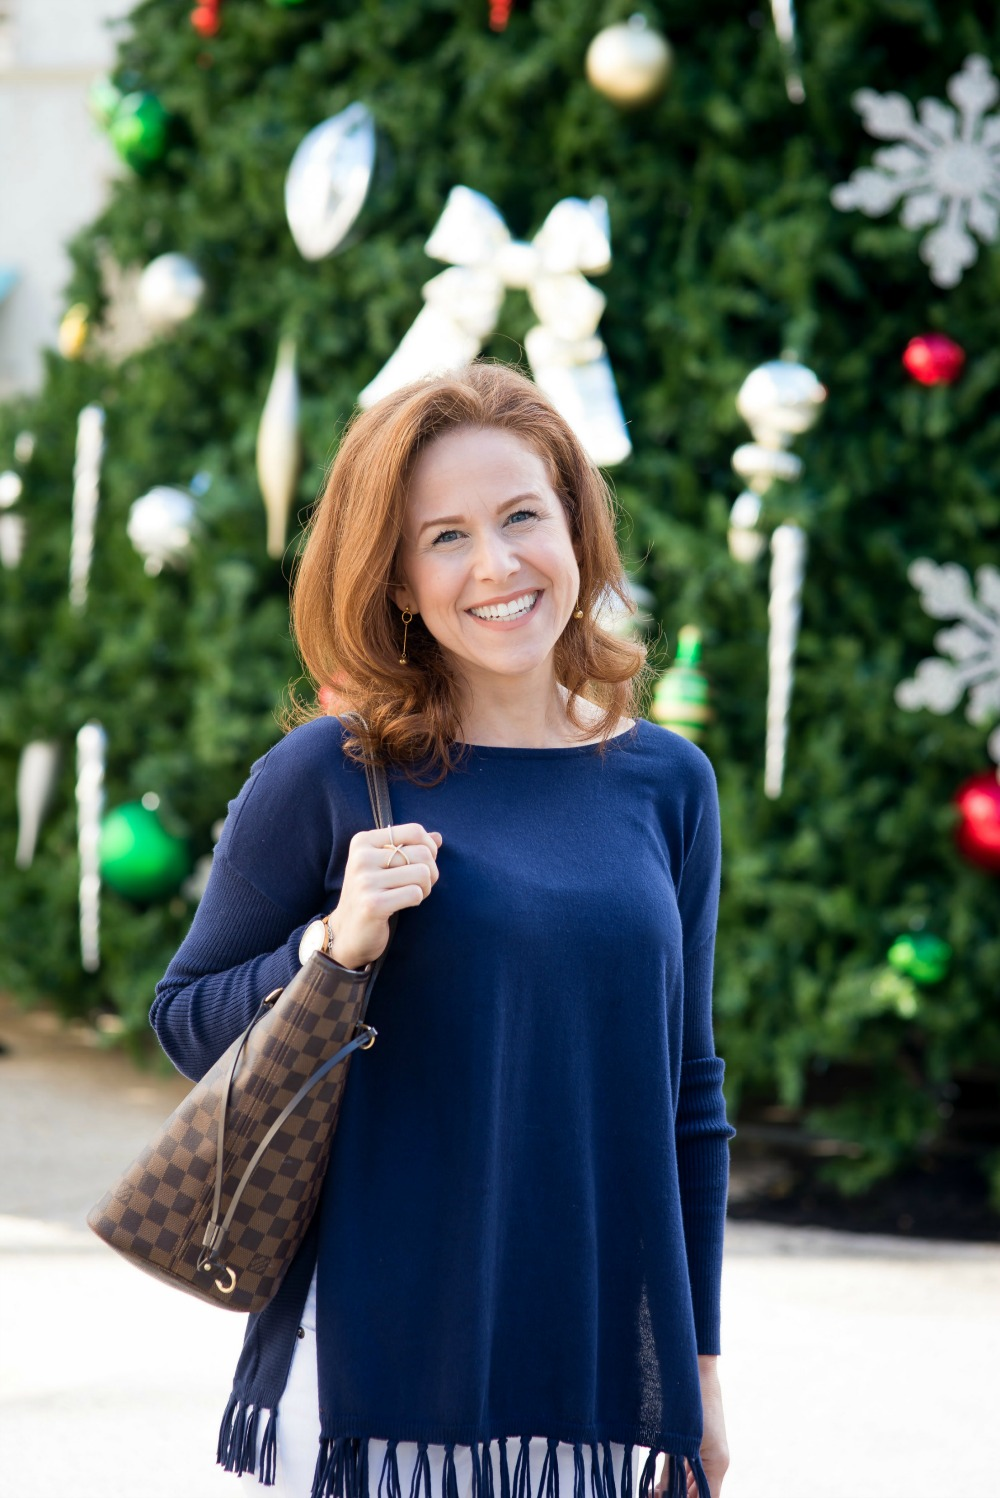 Alyson Seligman, a life & style blogger, CEO, mom of two